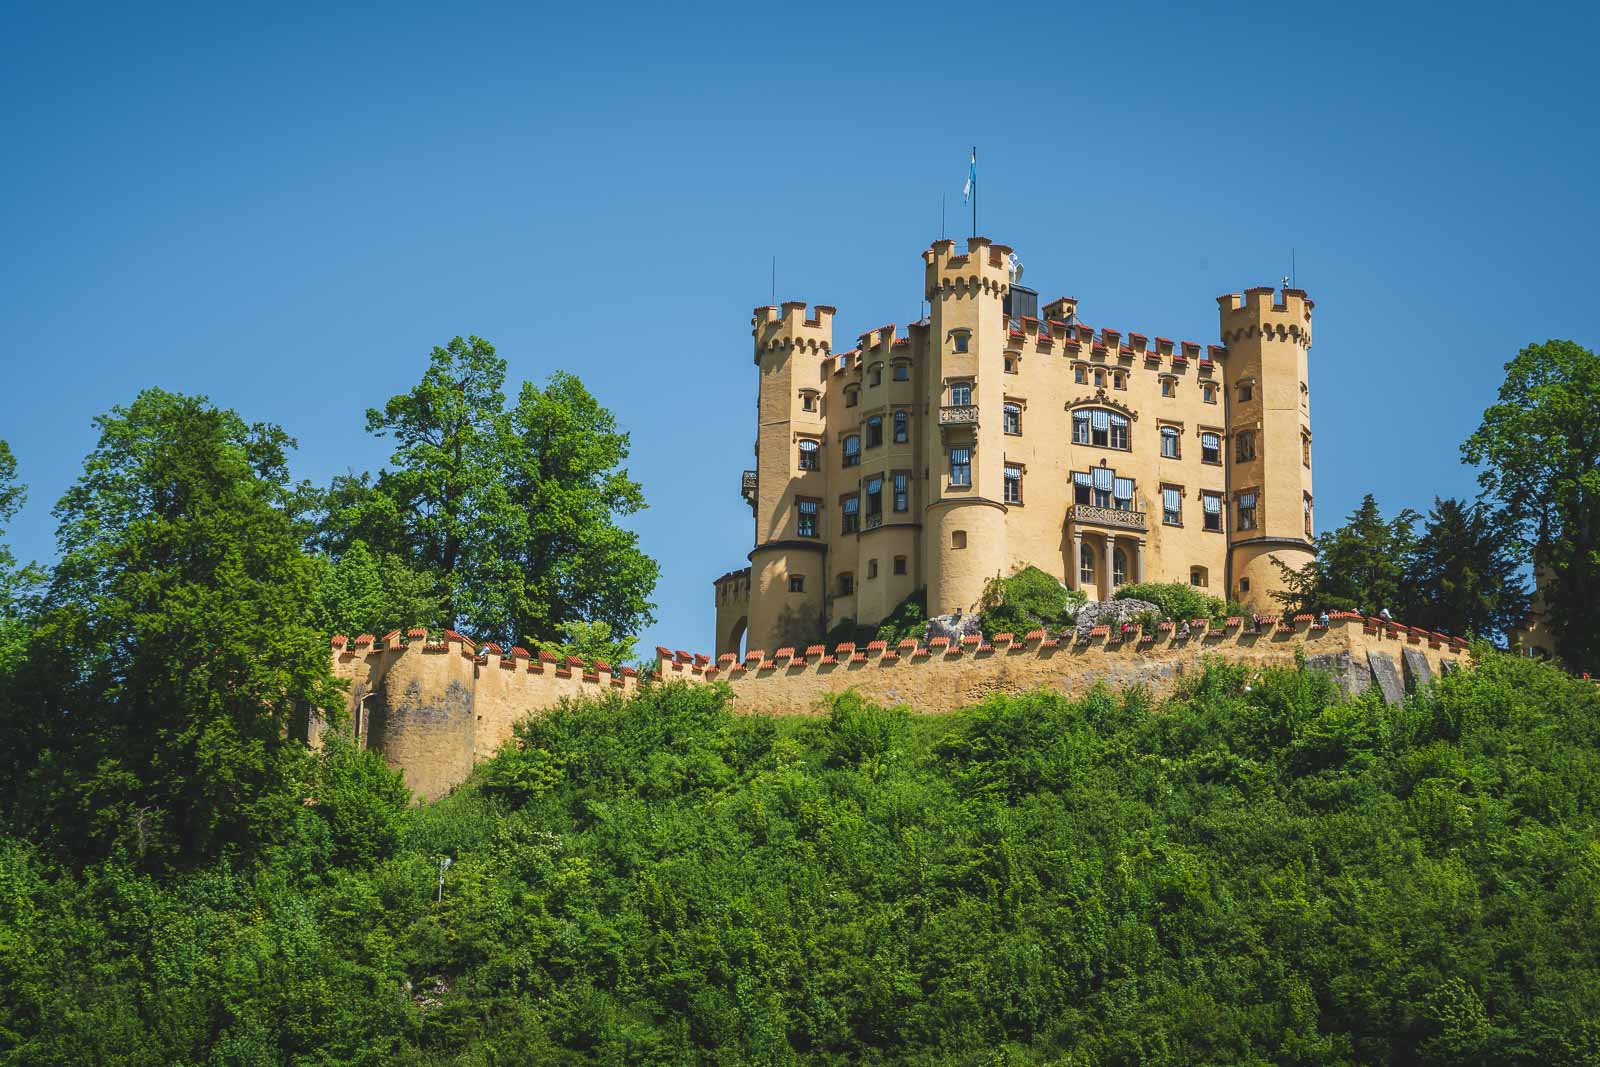 Germany has a lot of Castles